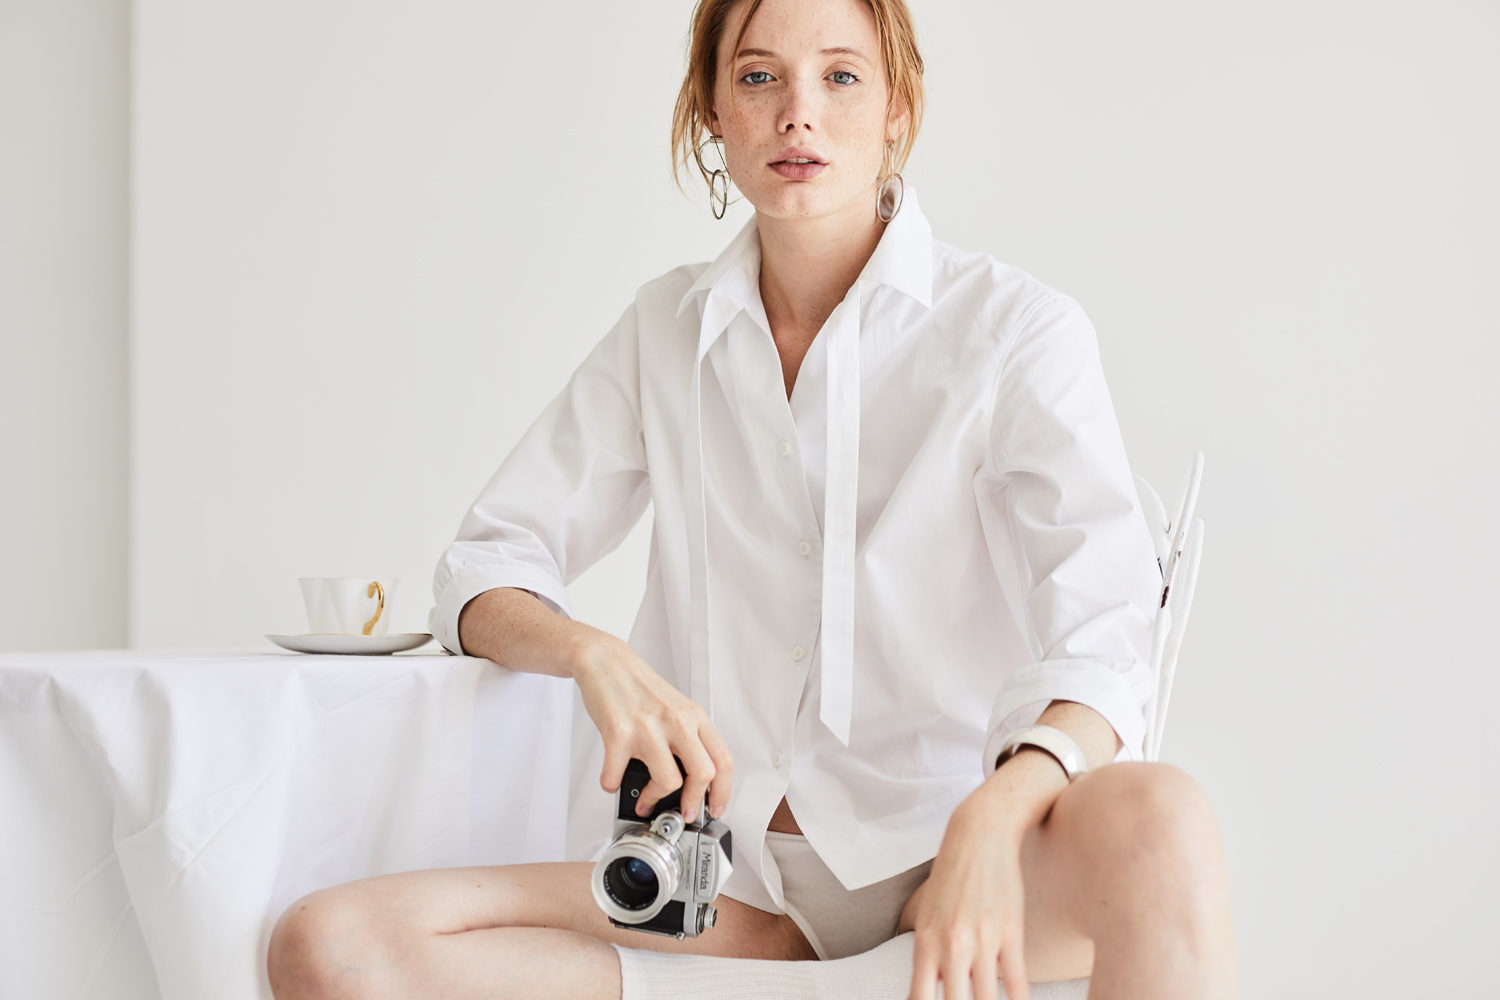 Sustainable fashion in nyc - Preposition White Shirt Grammar Nyc Sustainable Fashion Organic Cotton